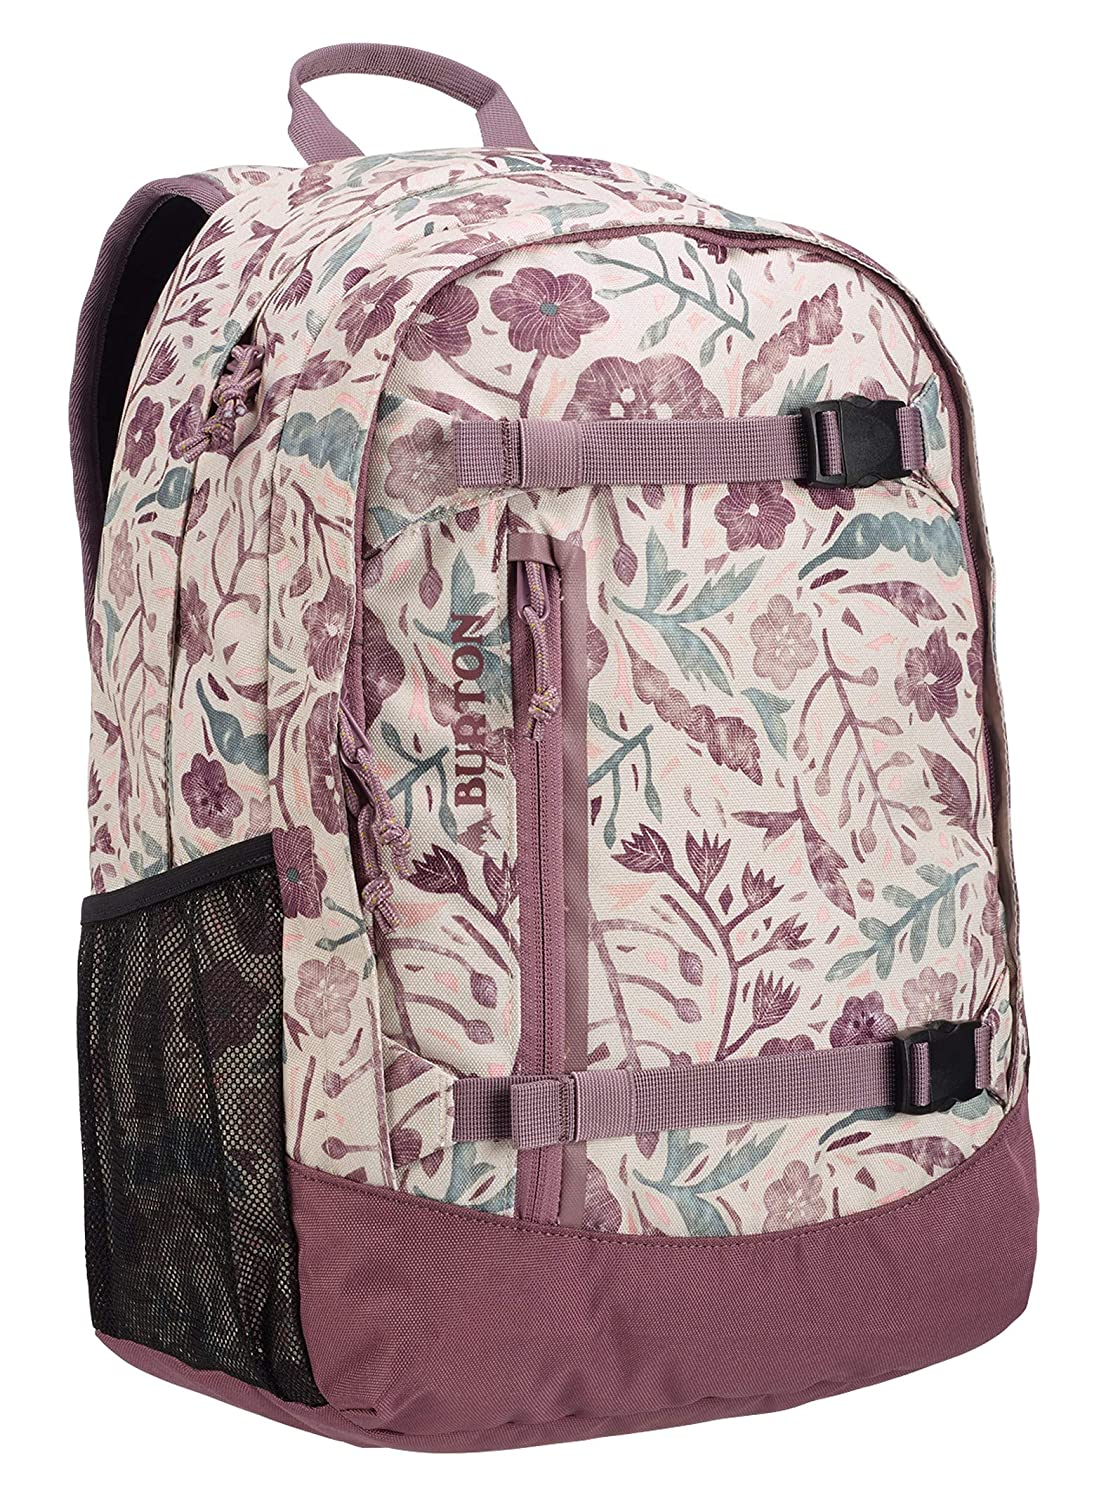 Burton Kids Multi-Use Lightweight Day Hiker Daypack//Backpack Wild Dove Polka Dot Print Burton Snowboards 110561